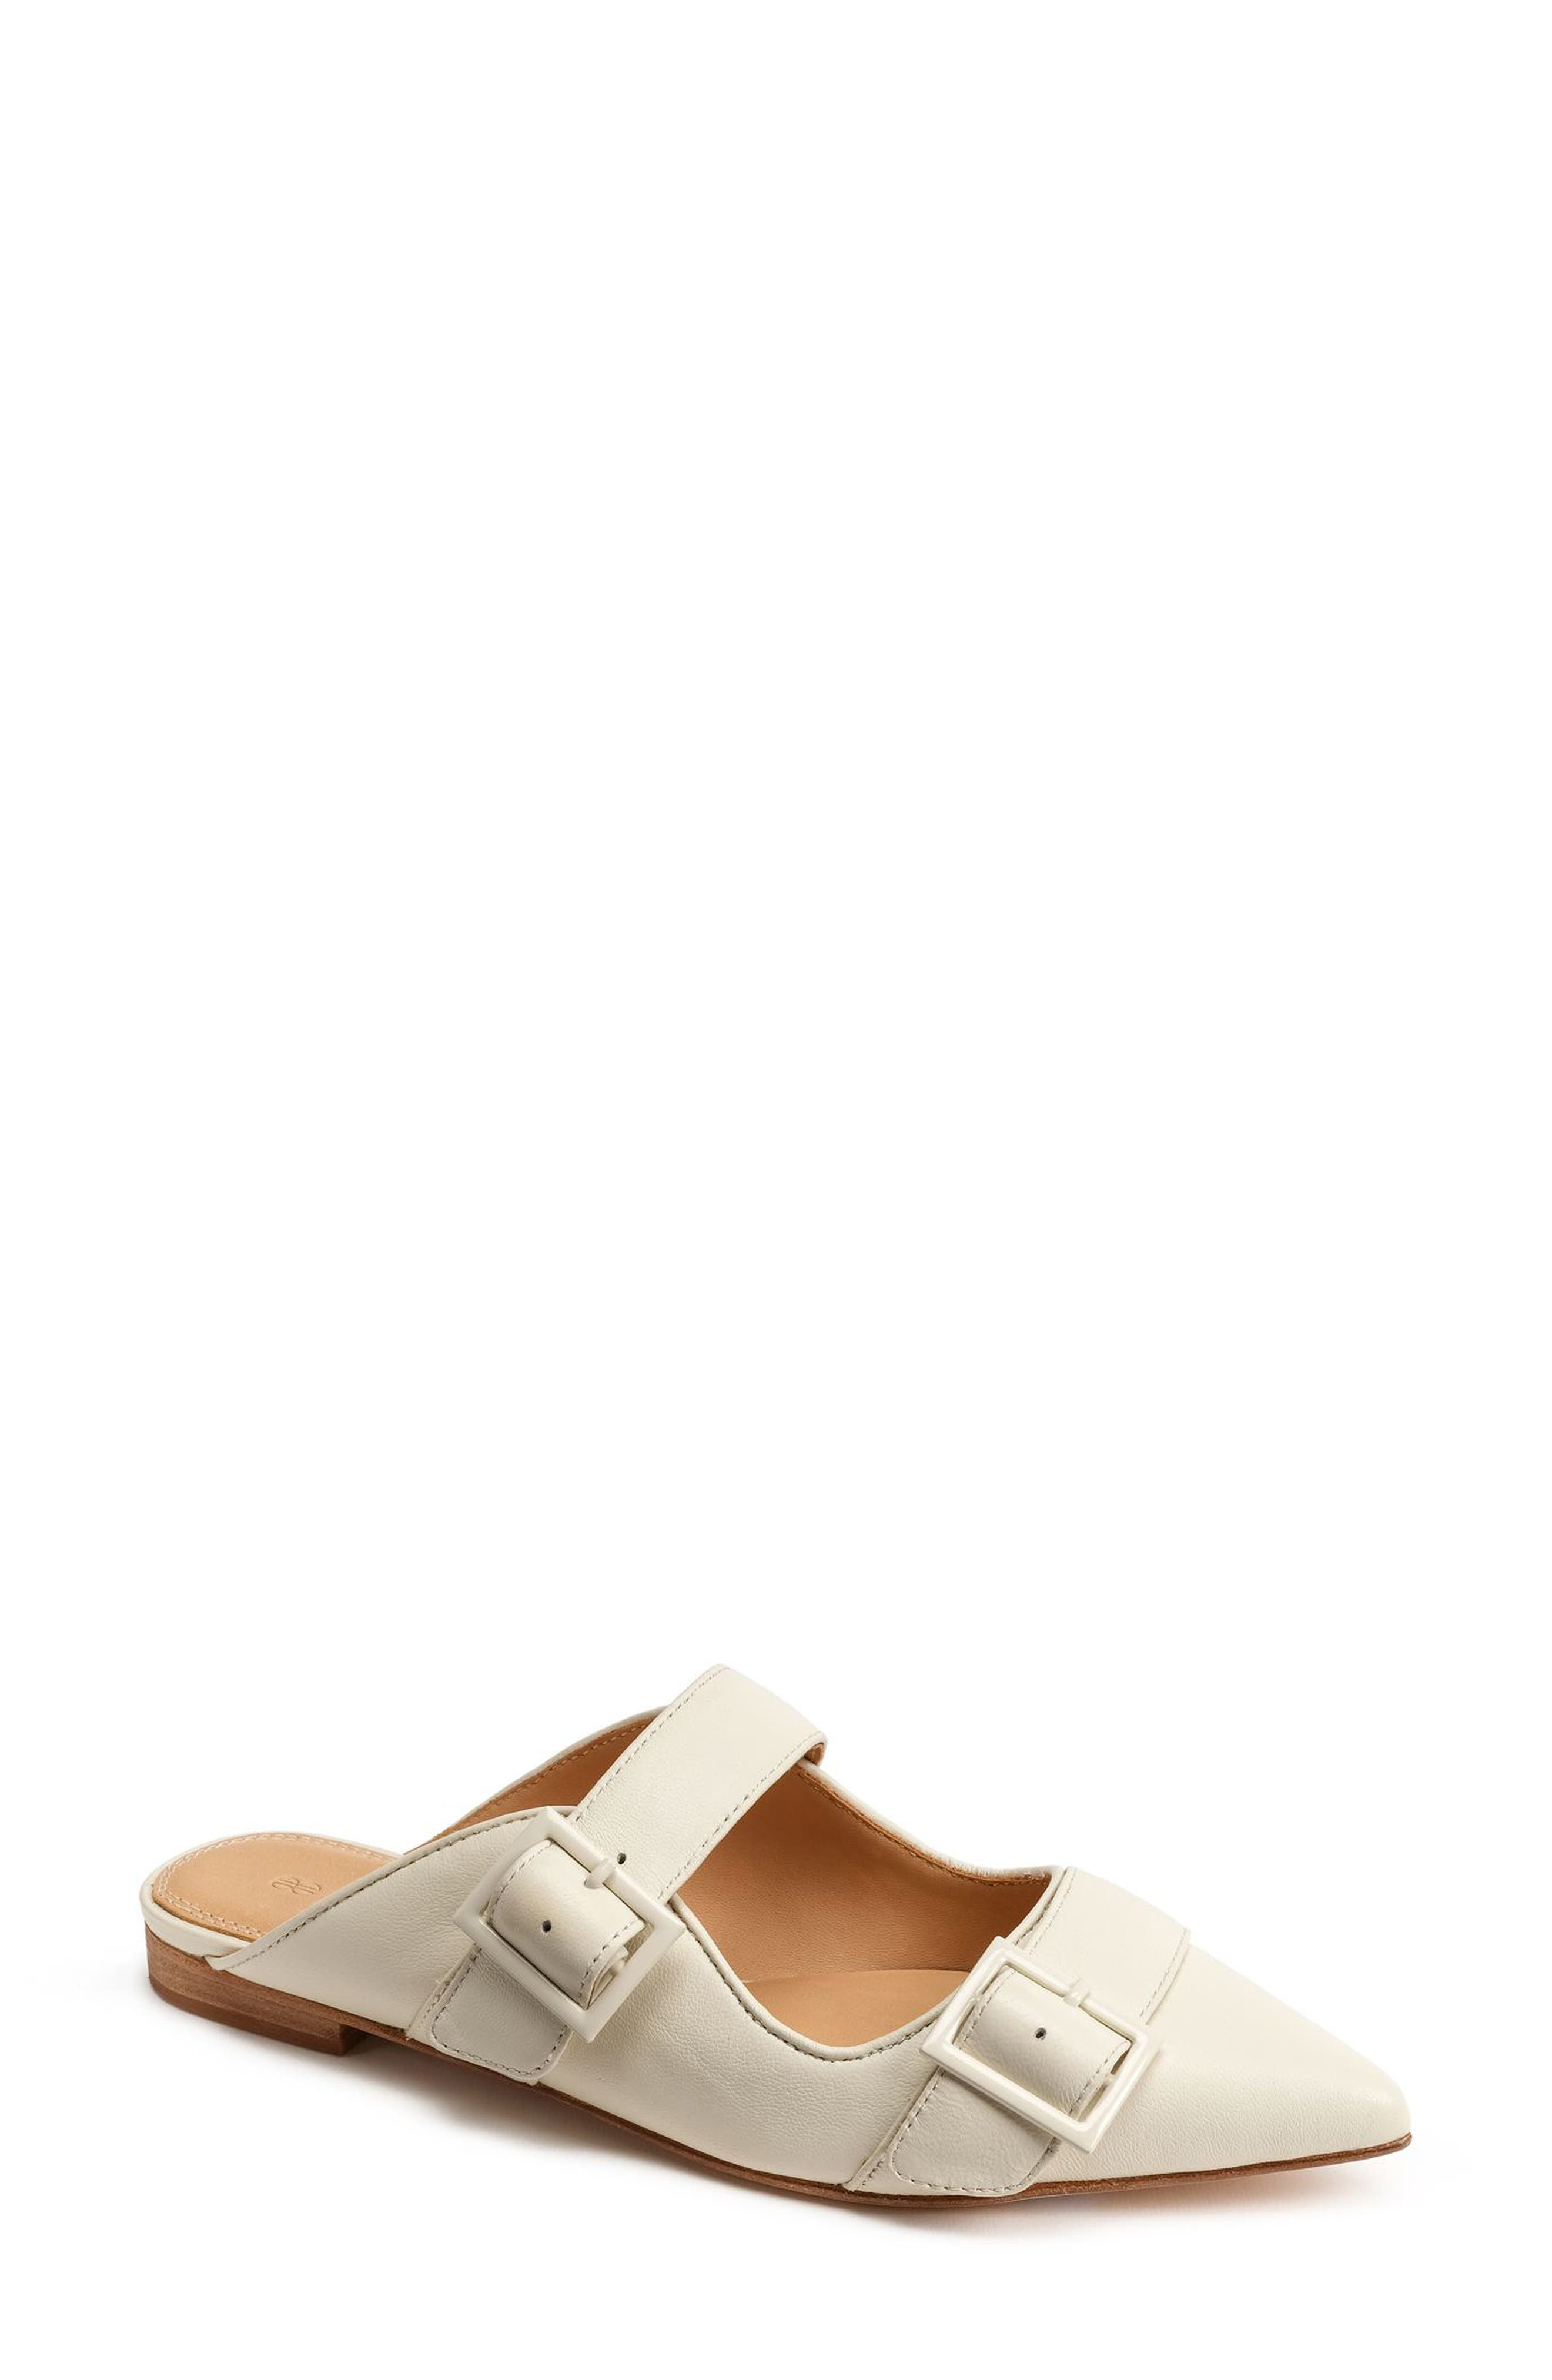 SYLIE POINTY TOE MULE